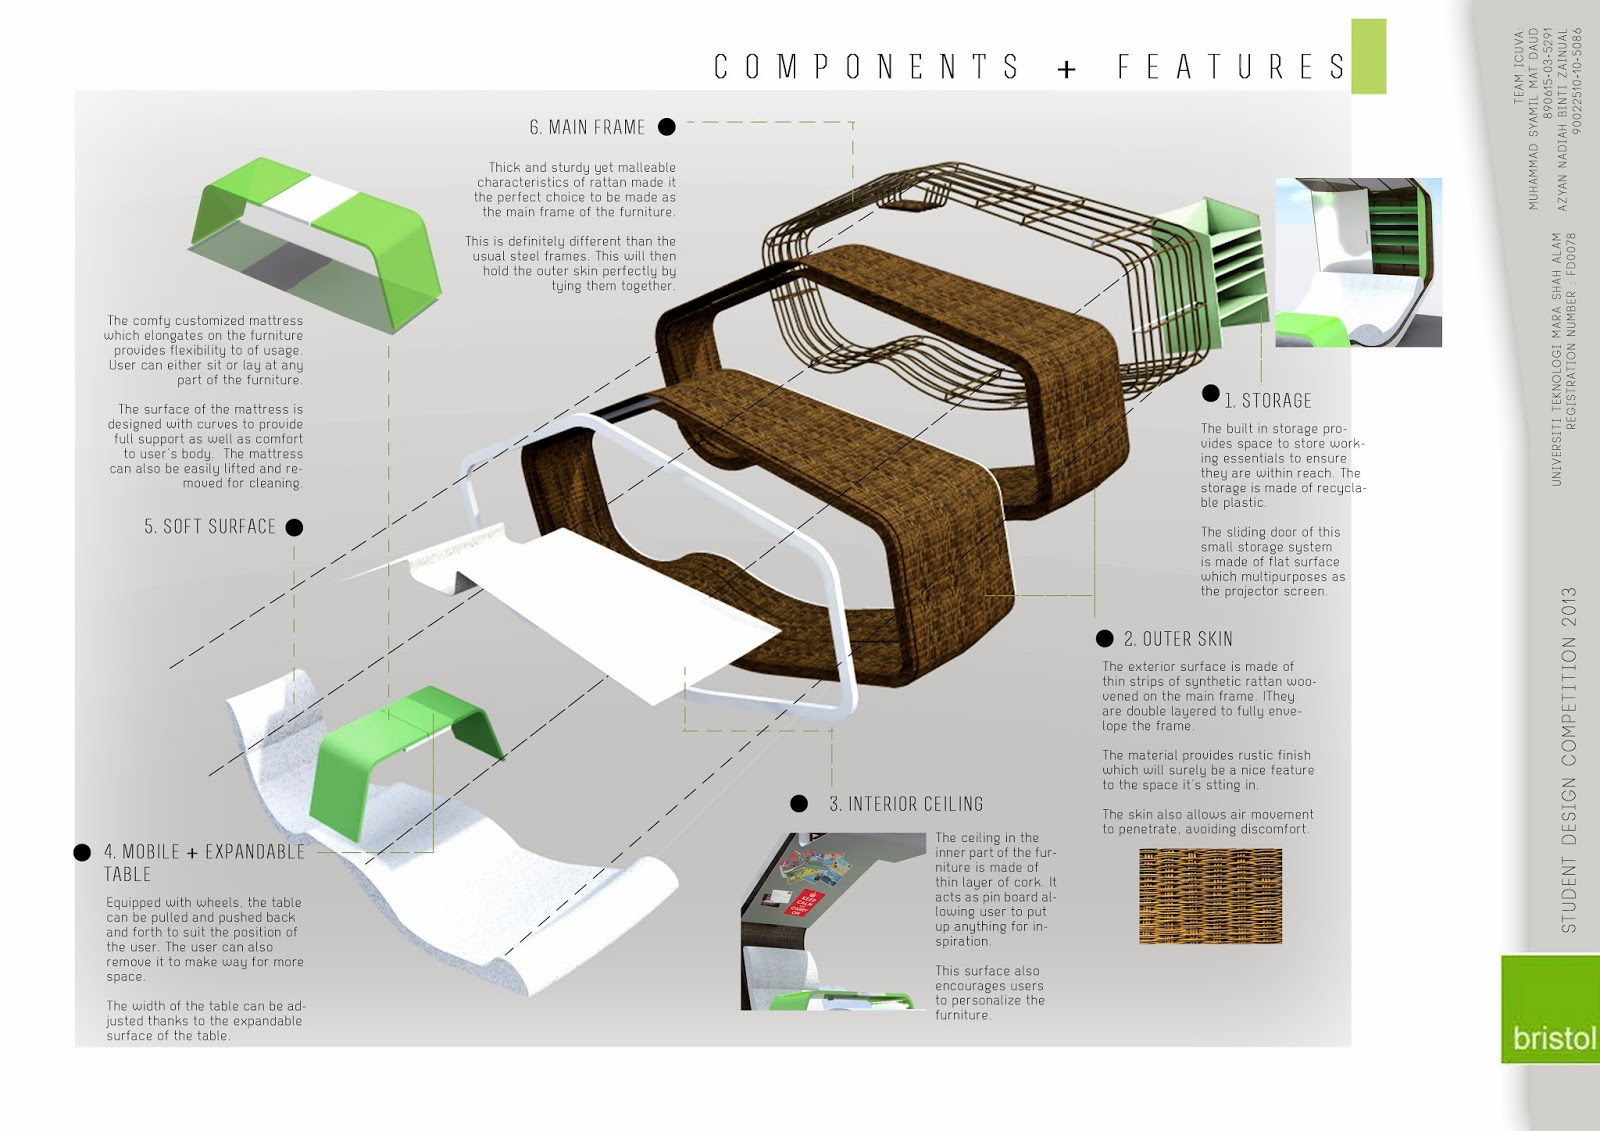 The standard office environment limits movement which will trigger stress   The soft surface of the furniture allows the user to either lie down. Furniture Design For Bristol Student Competition   KHZNH STUDIO